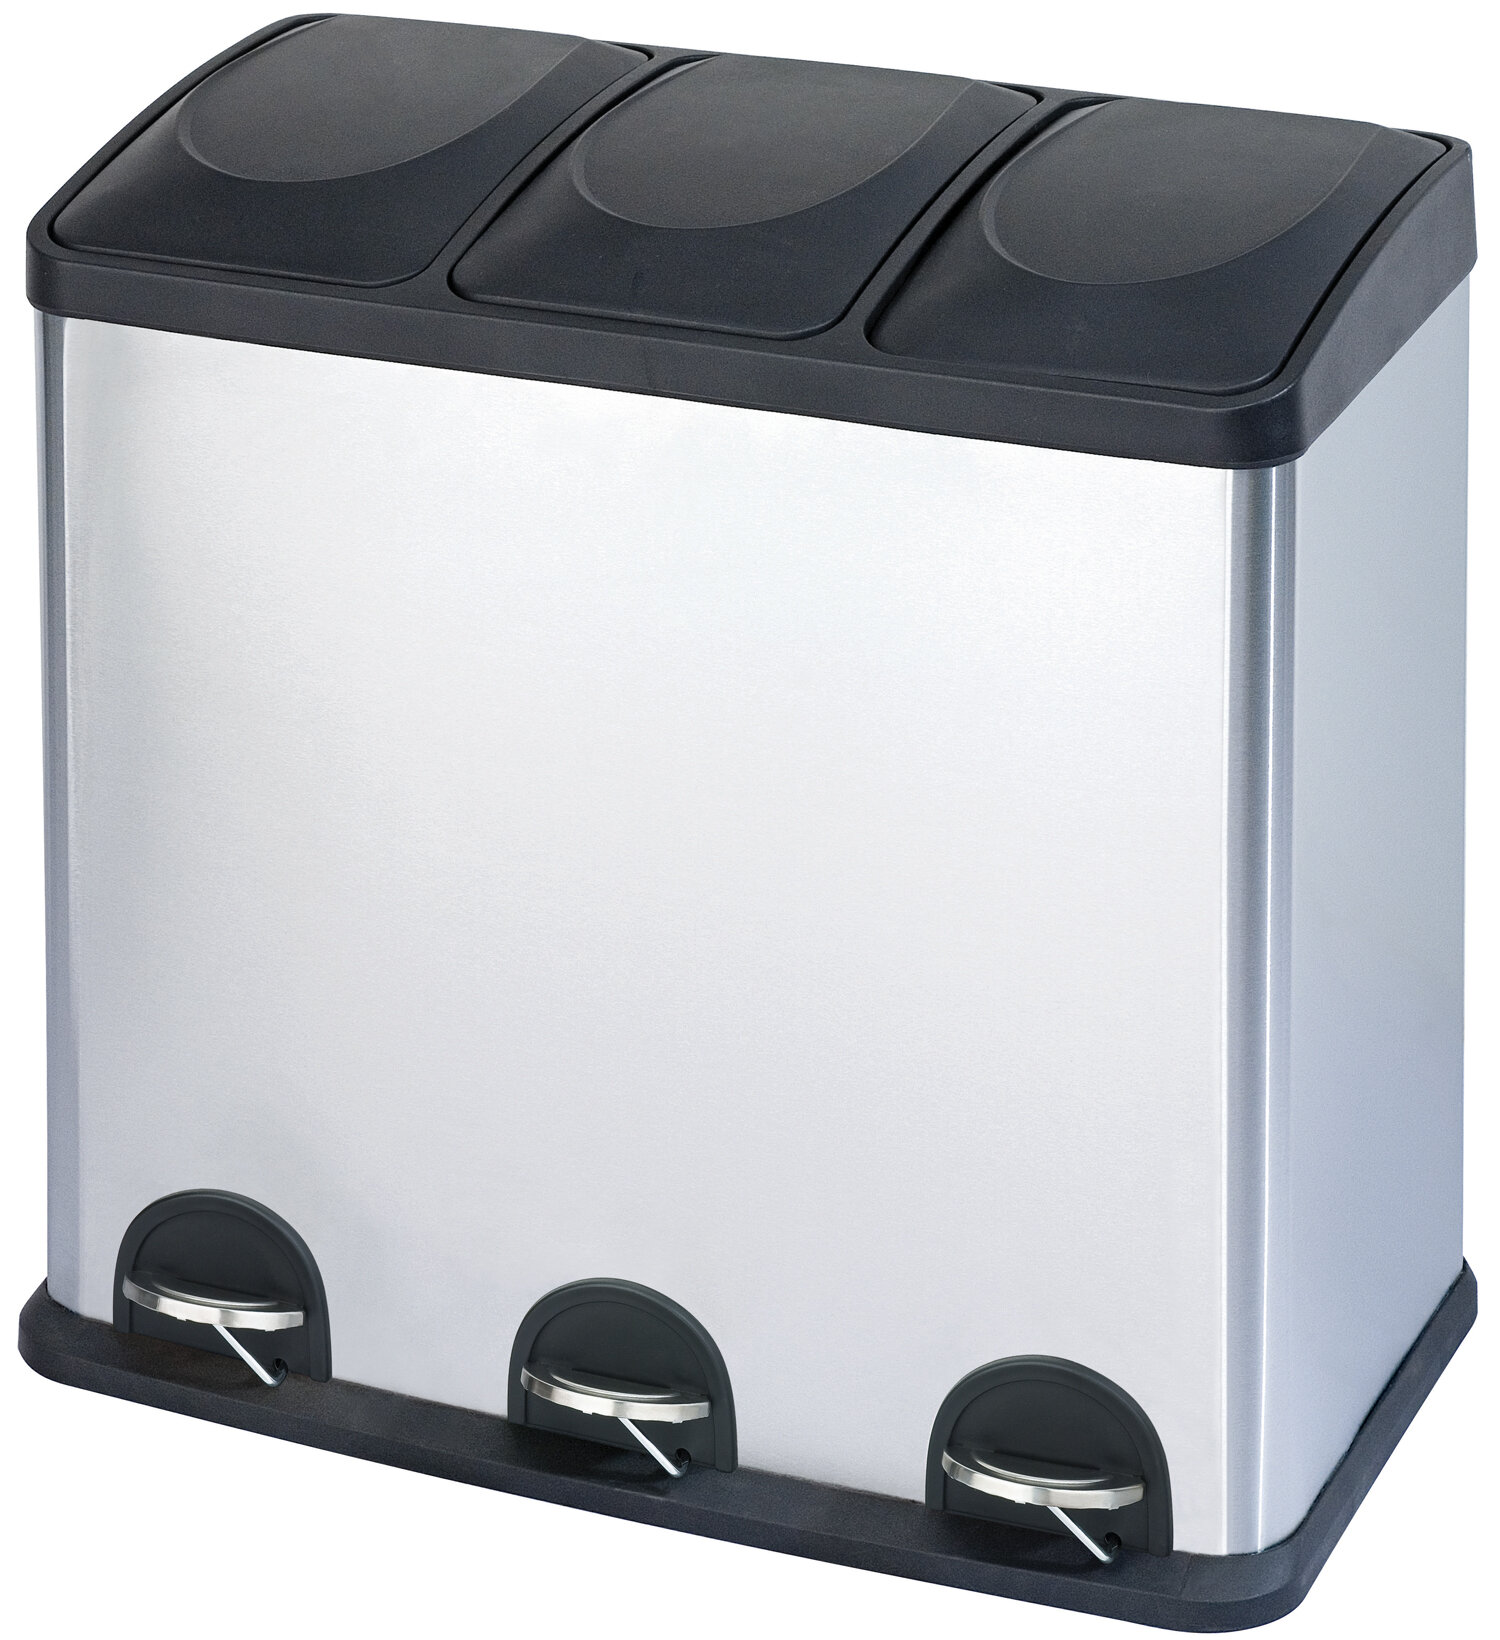 Step N Sort Stainless Steel 3 Compartment 16 Gallon Trash Can Reviews Wayfair